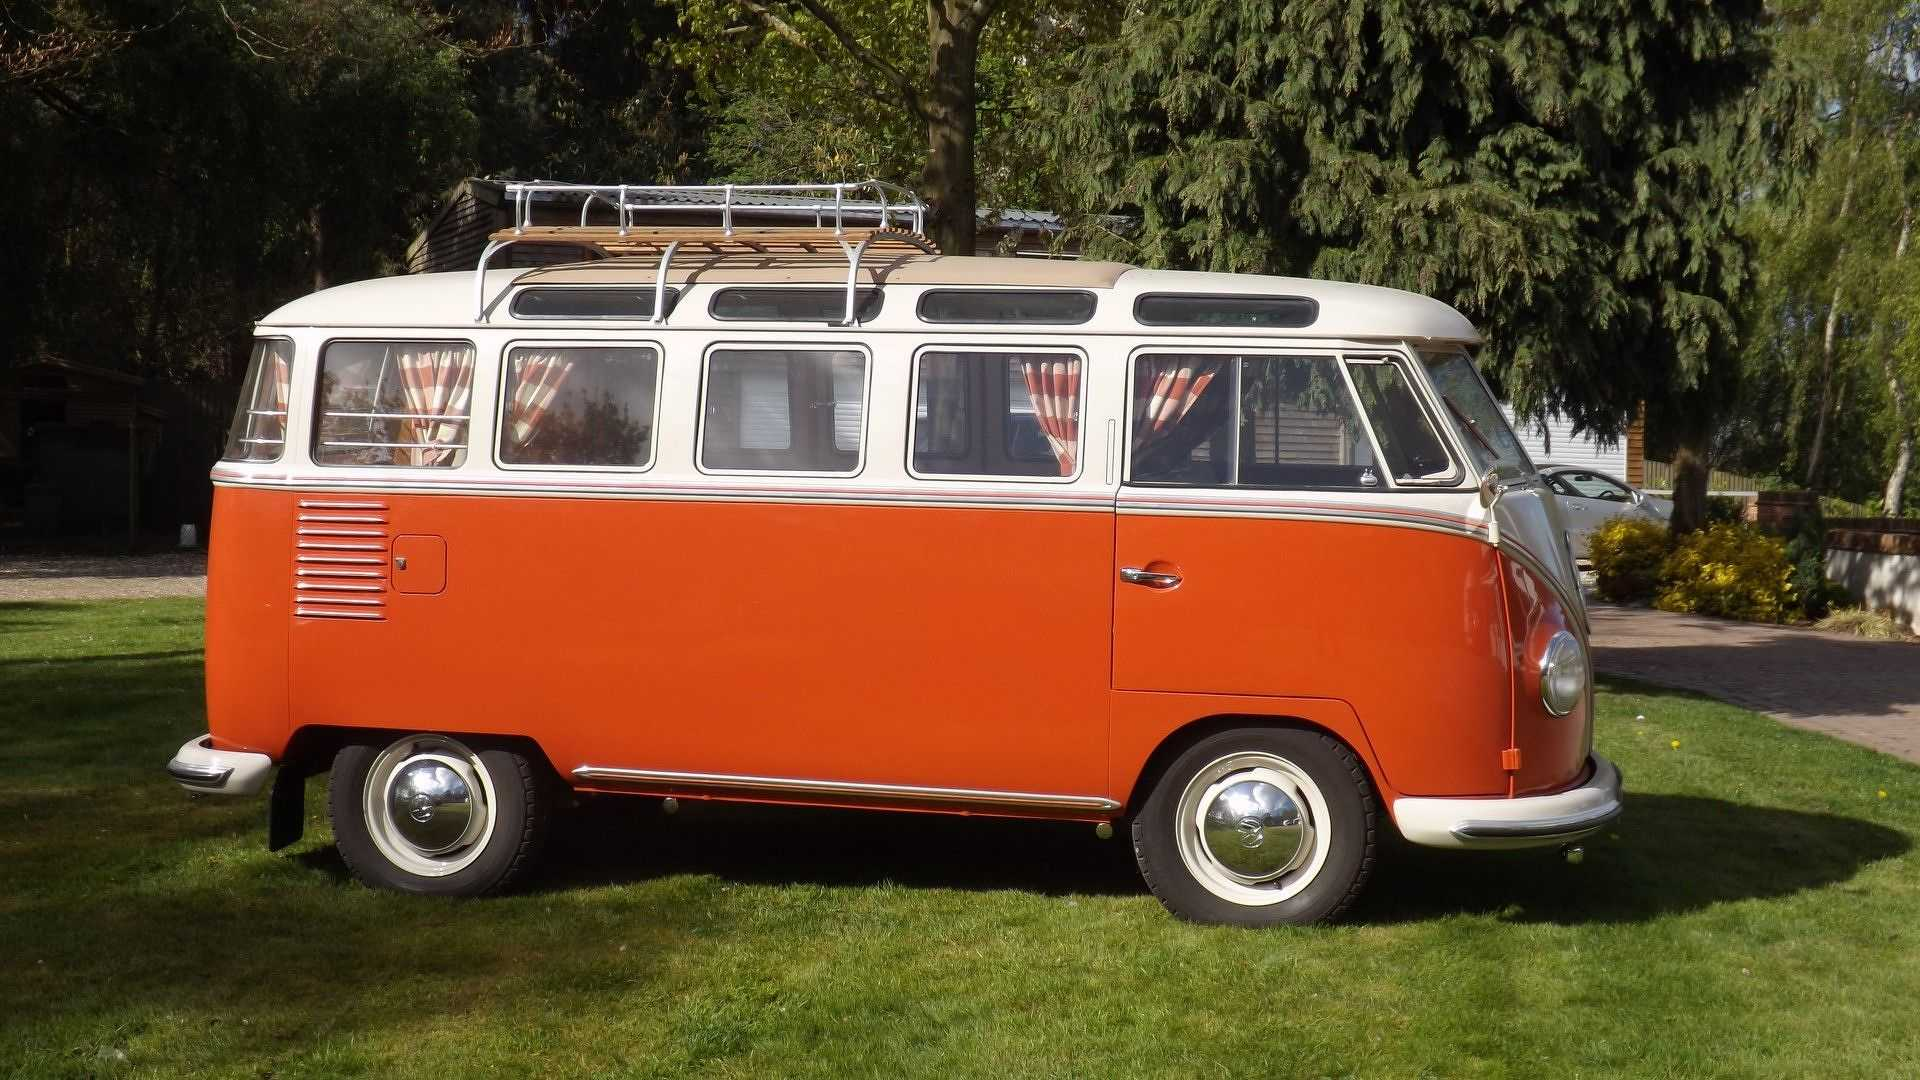 under travel although seen of this it had used outings traveller category van has williams was for year and the both cmc in morris sale vw we enjoyable just camper volkswagen several campervan